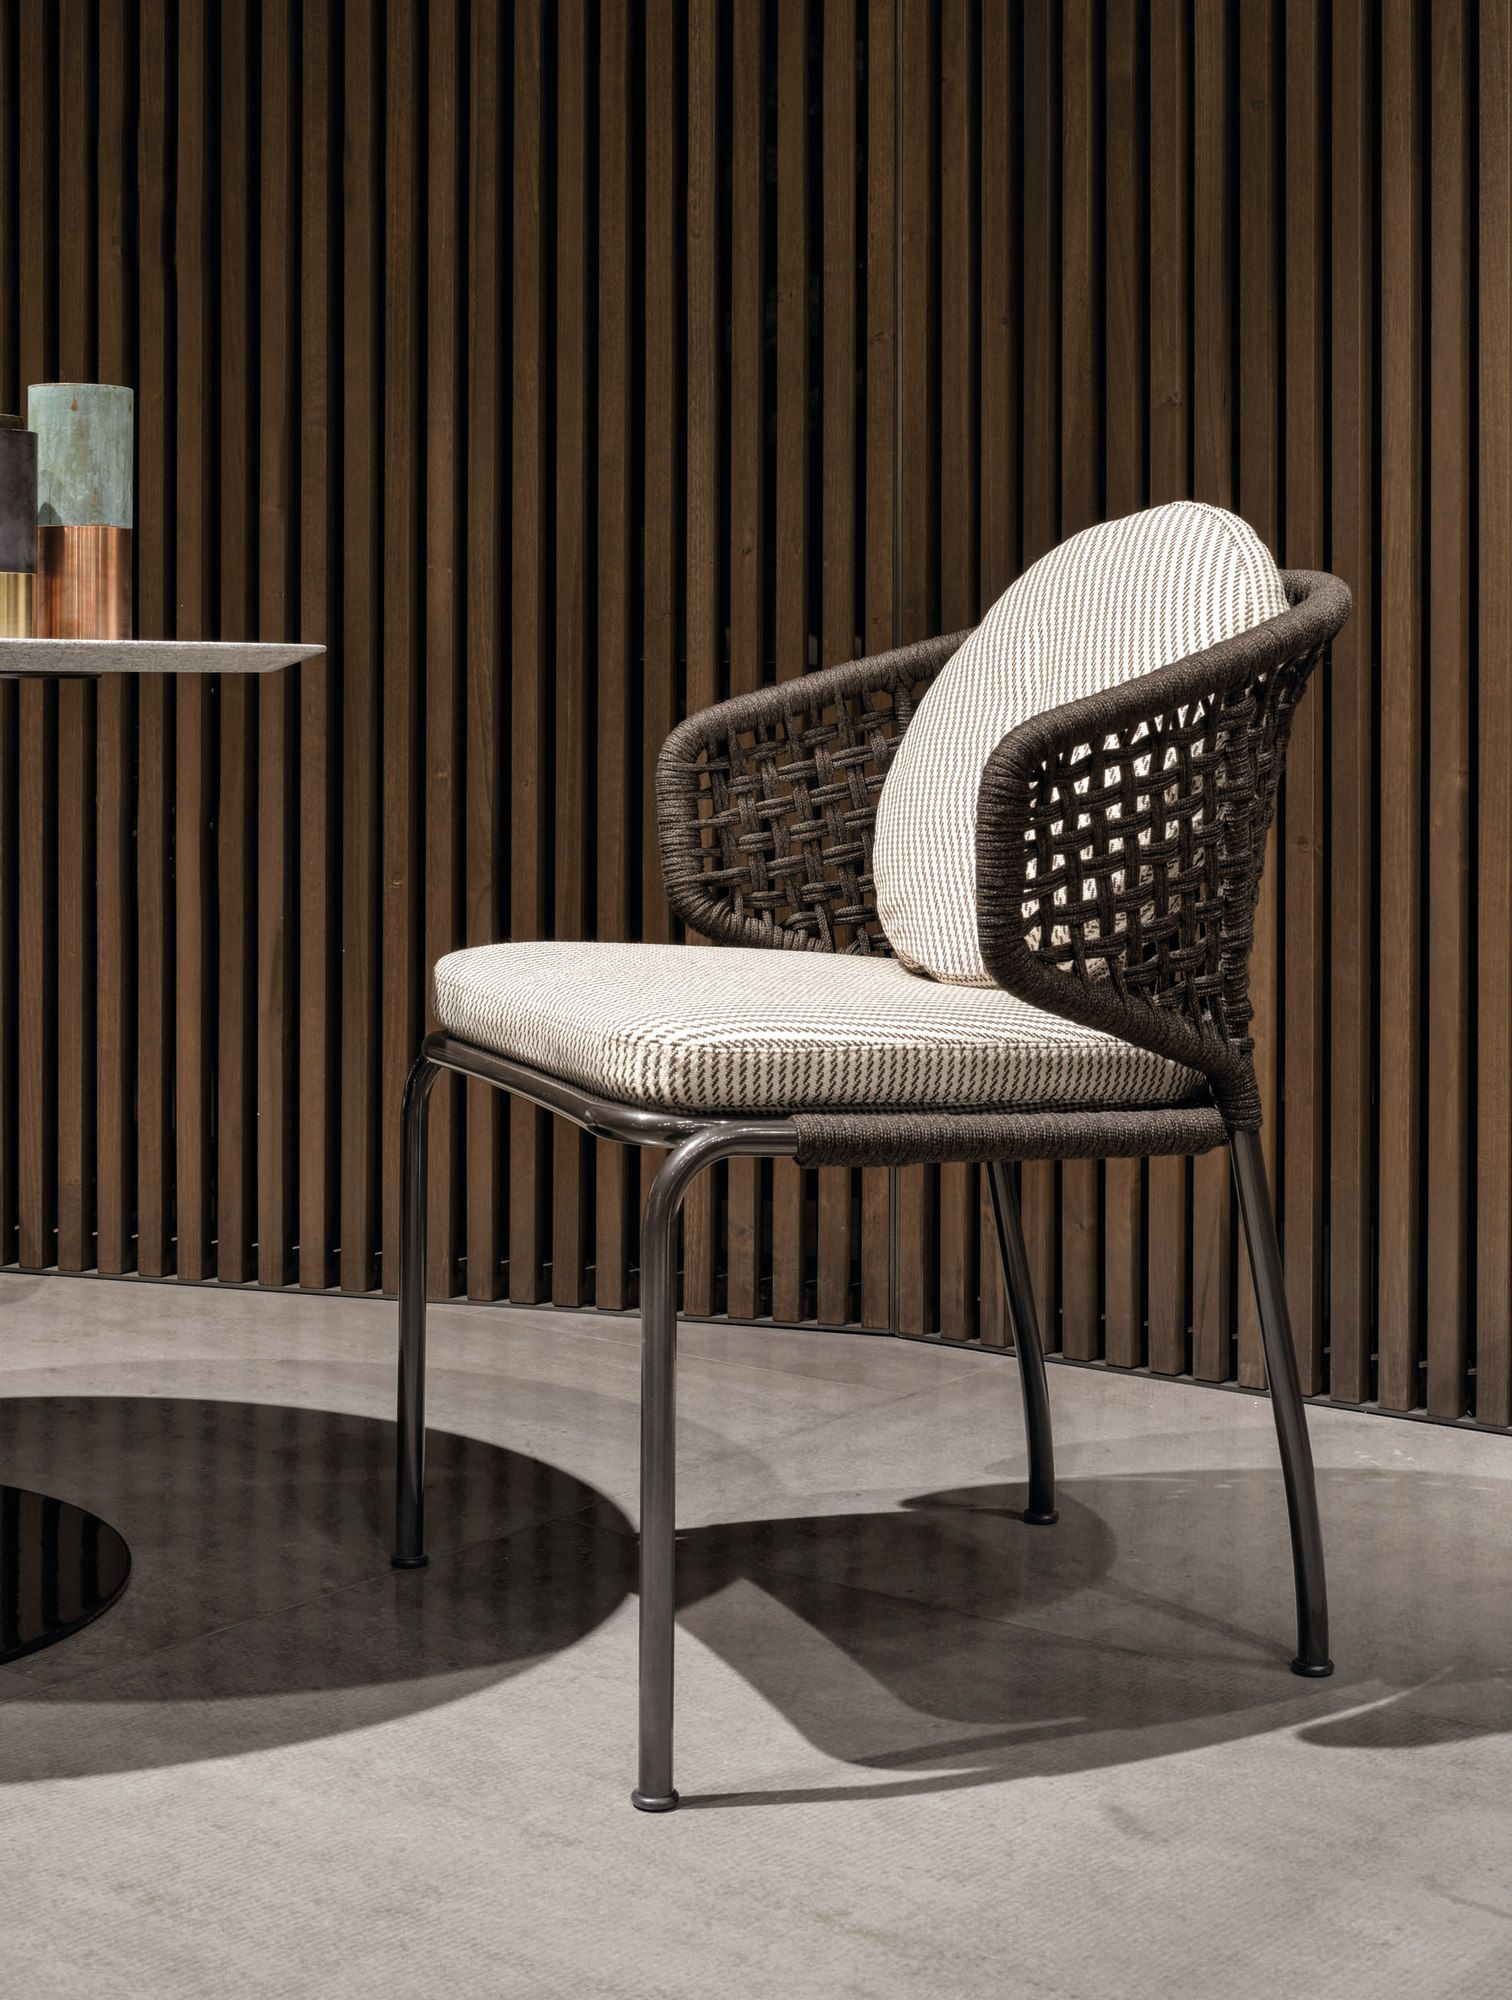 Aston Quot Cord Quot Outdoor Chair By Minotti Design Rodolfo